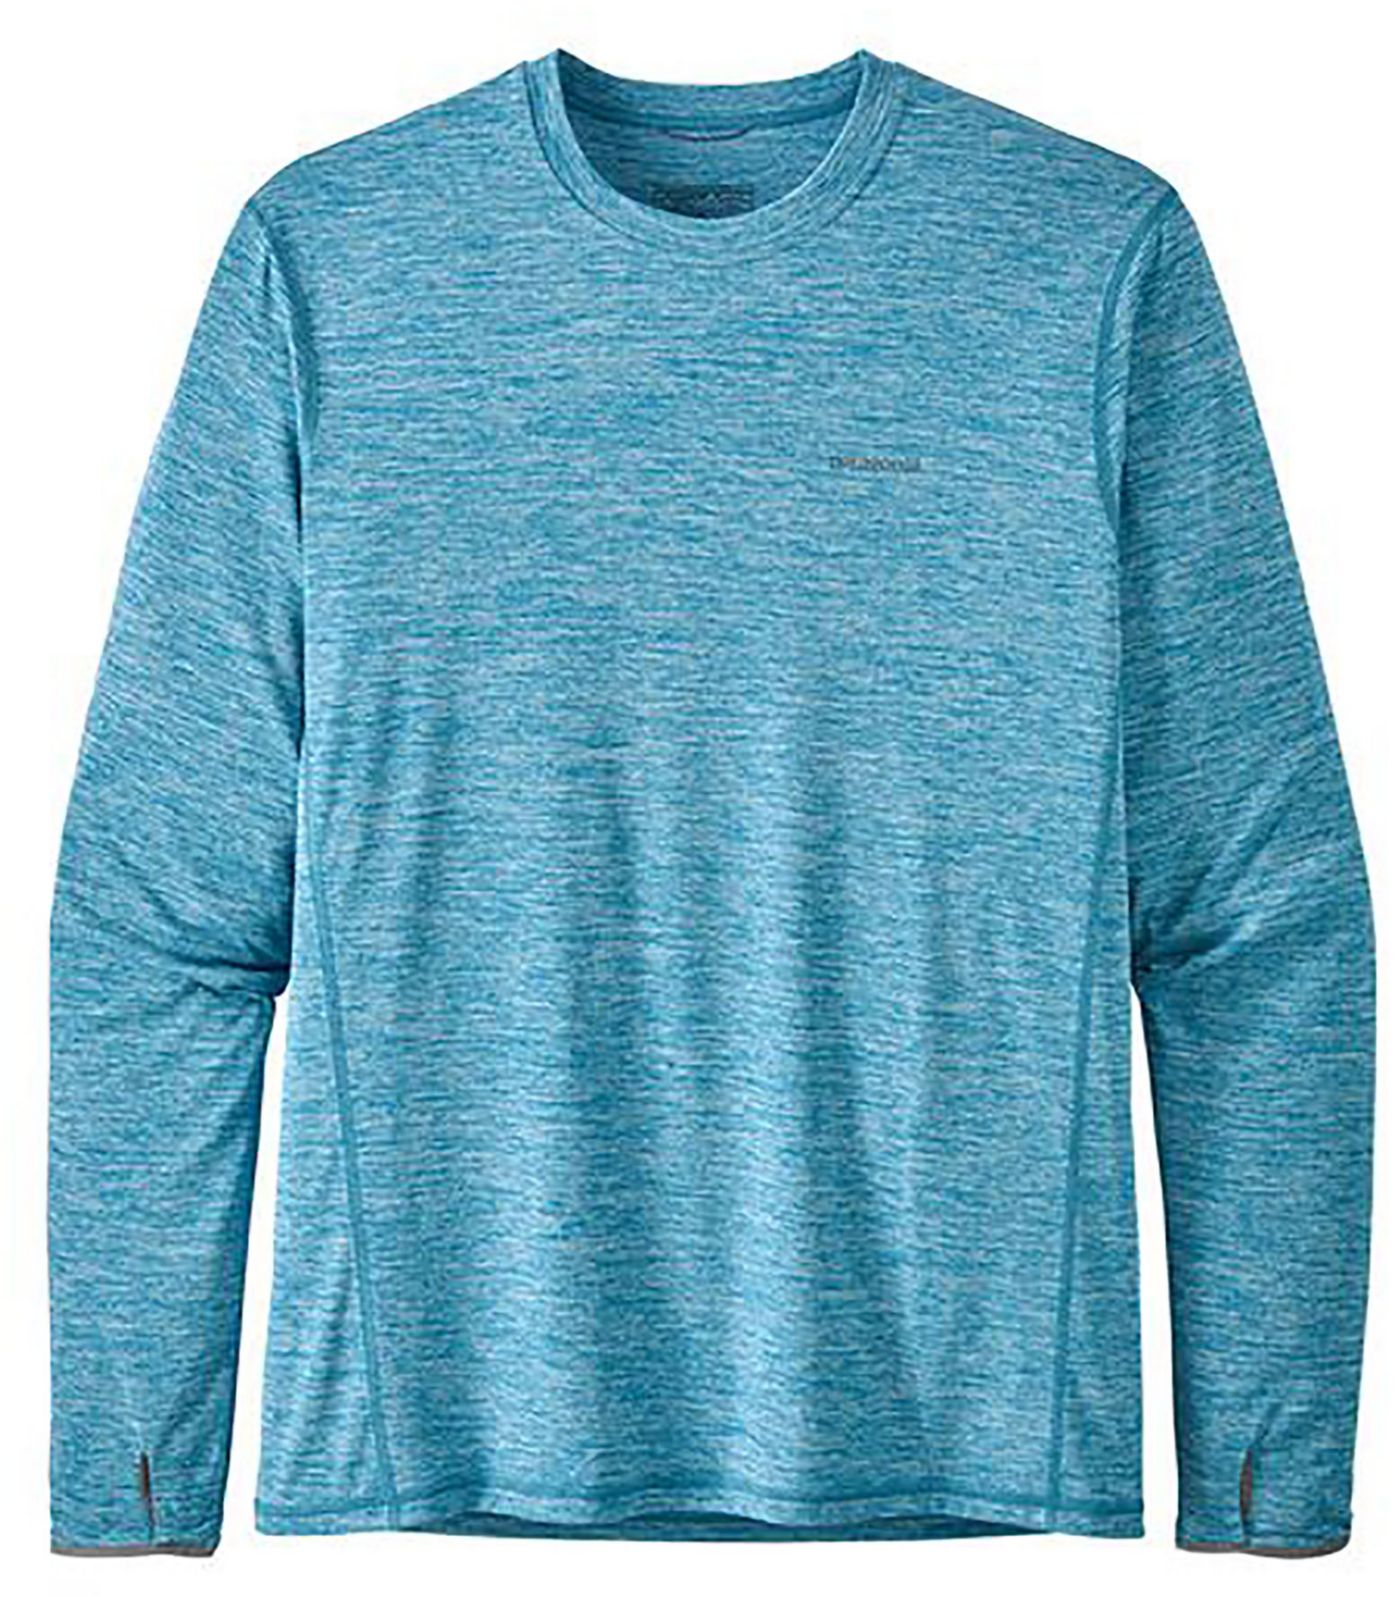 Patagonia Men's Tropic Comfort Capilene Cool Long Sleeve Shirt